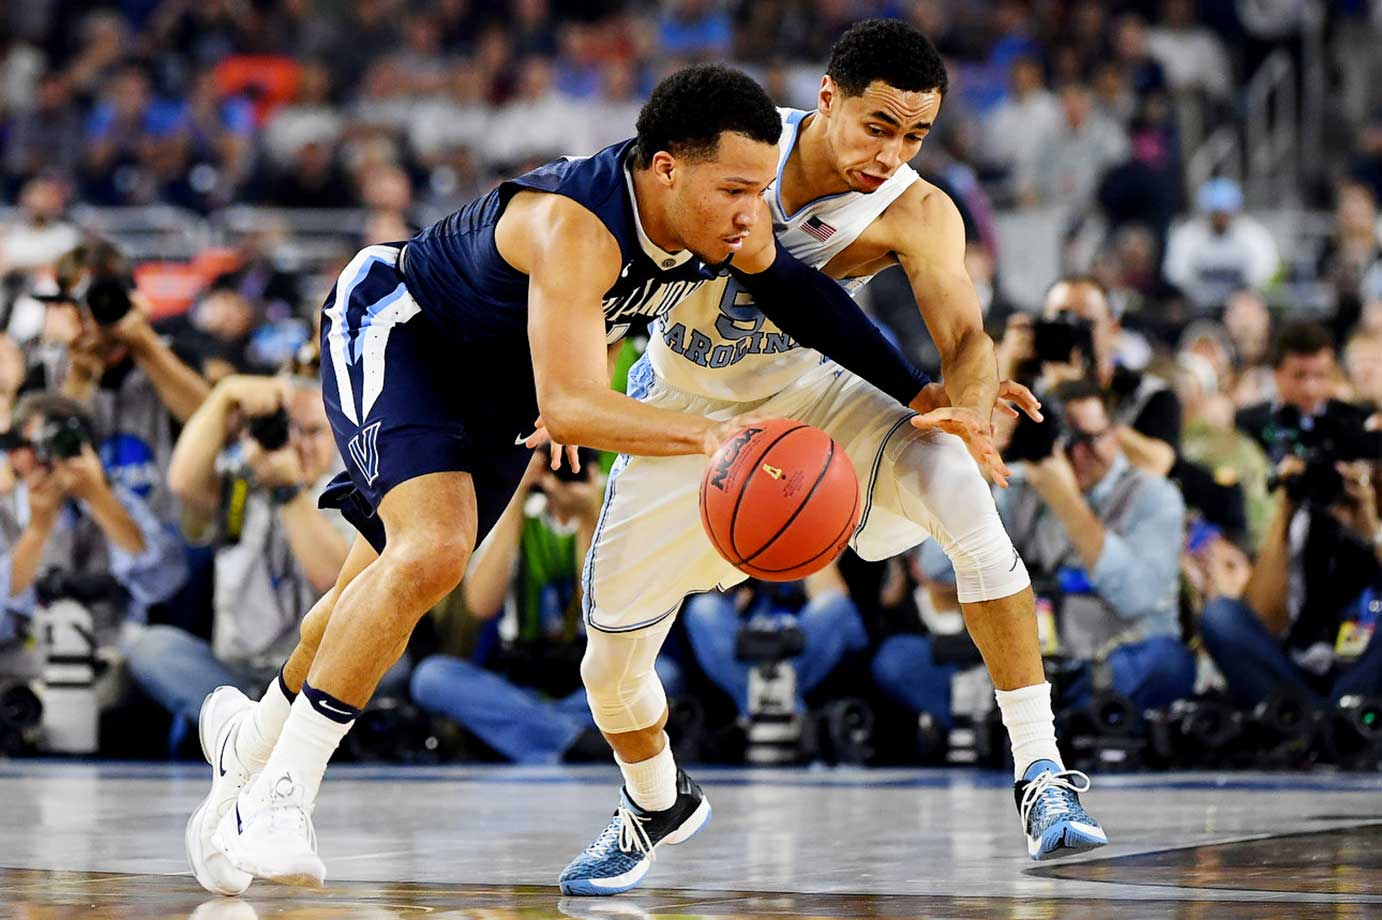 Jalen Brunson and Marcus Paige compete for the ball.